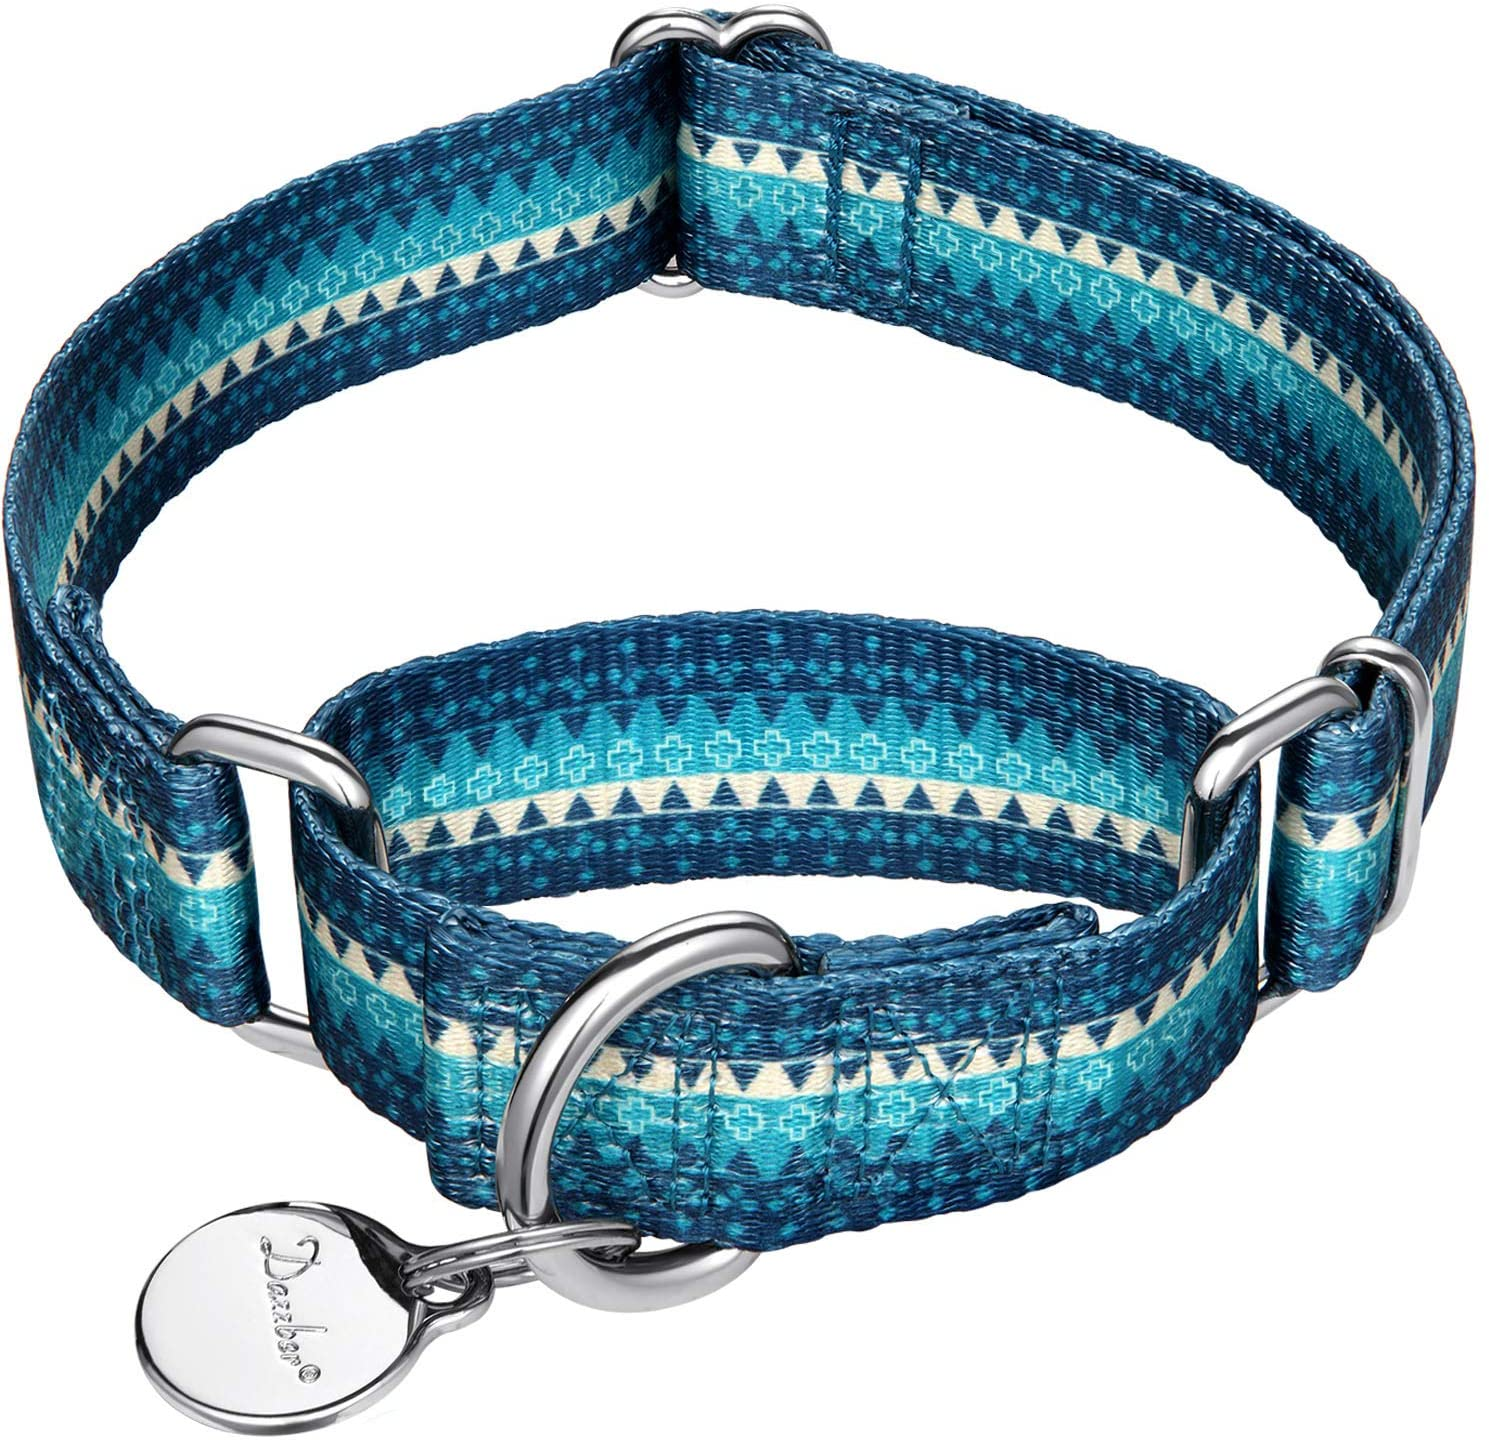 Dazzber Martingale Collar Dog Collar No Pull Pet Collar Heavy Duty Dog Martingale Collars Silky Soft with Unique Pattern for Medium and Large Dogs